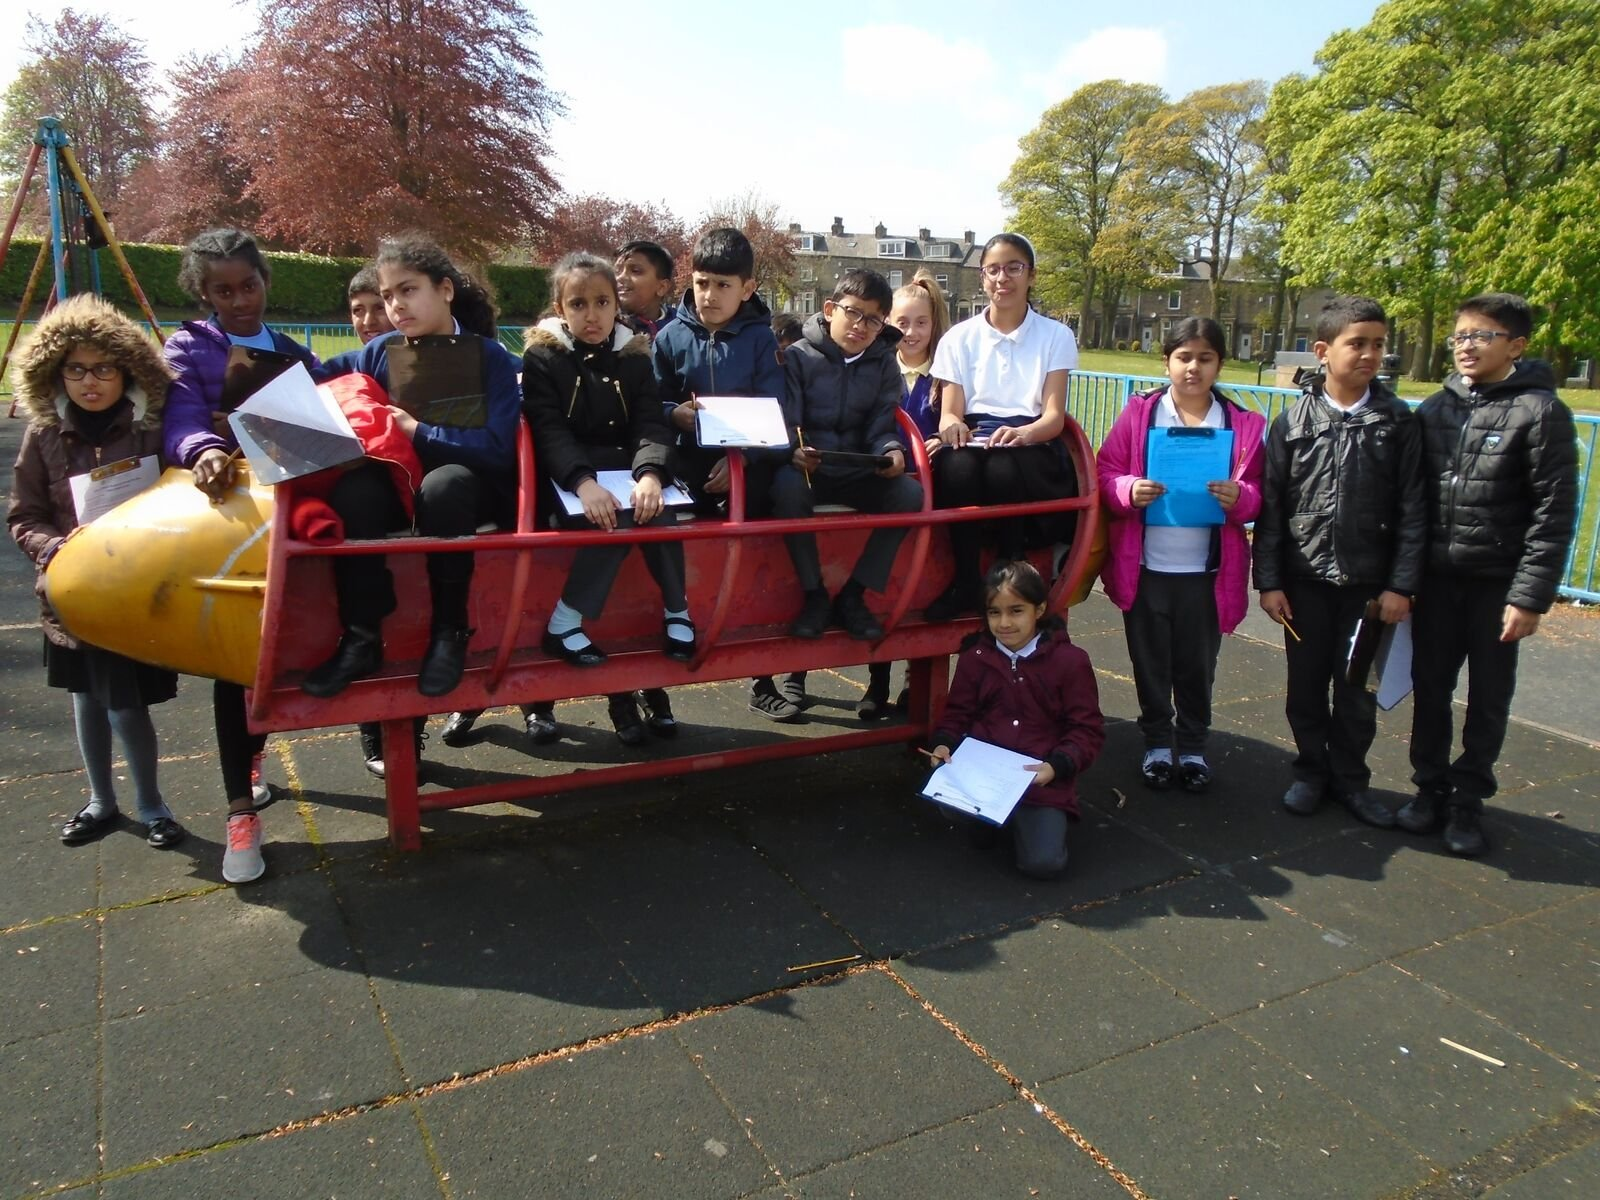 Hopefully we can make the children from Hollingwood Primary School a bit happier with the equipment in the playground!